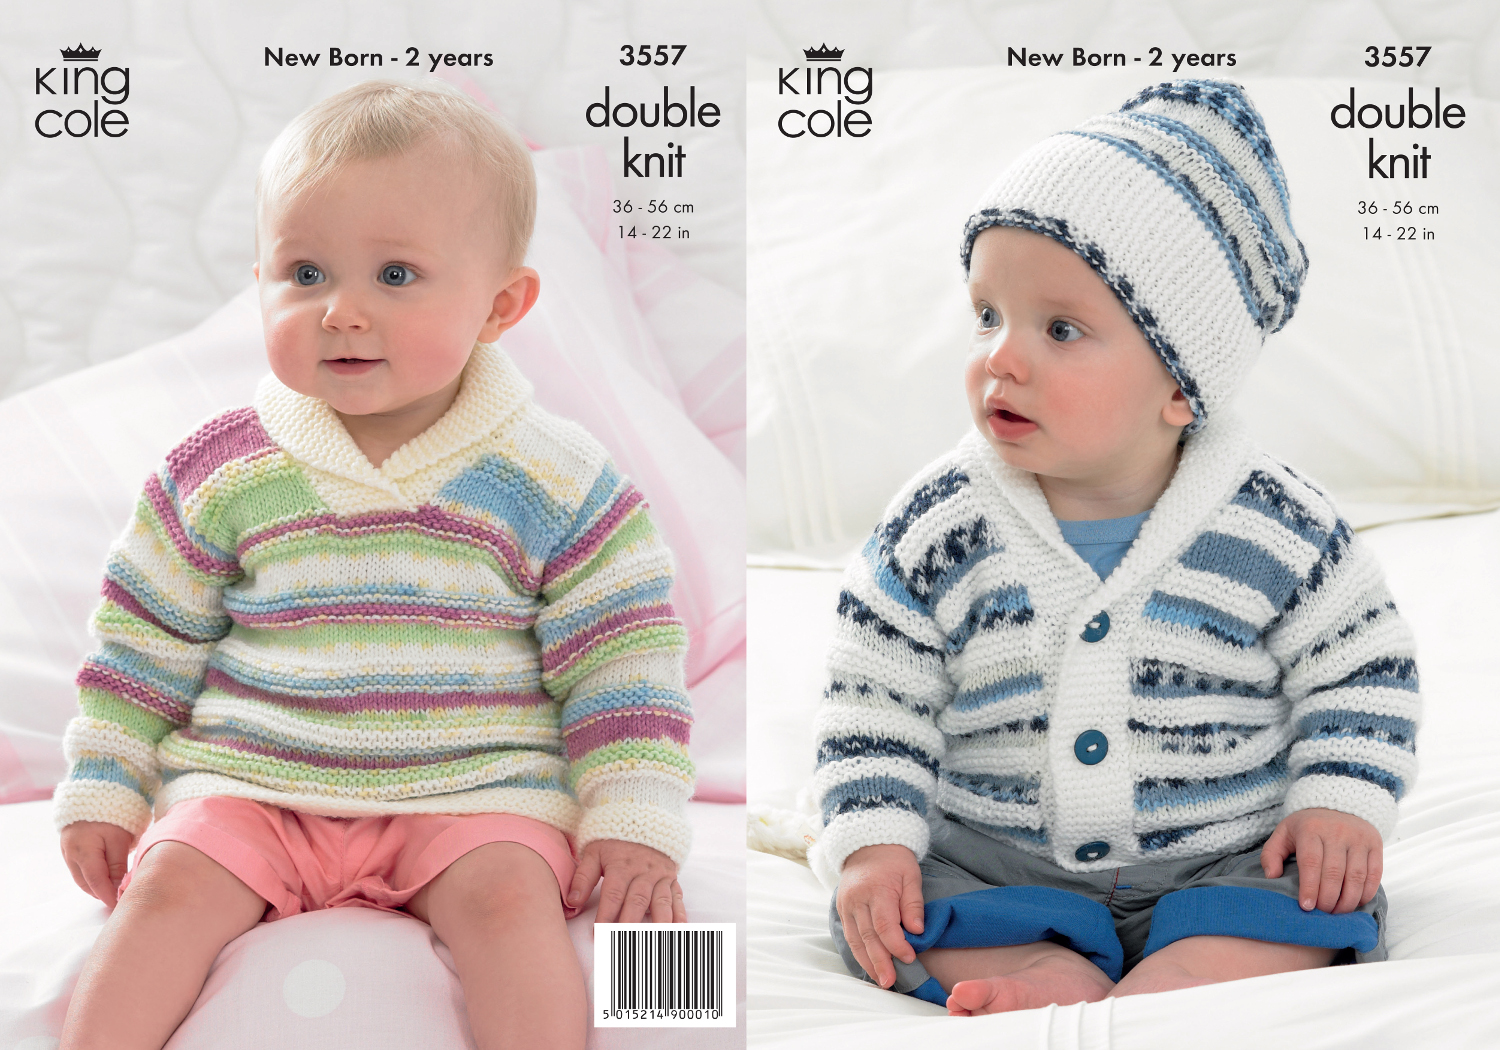 King cole baby double knitting dk pattern striped sweater jumper king cole baby double knitting dk pattern striped sweater jumper jacket hat 3557 bankloansurffo Choice Image